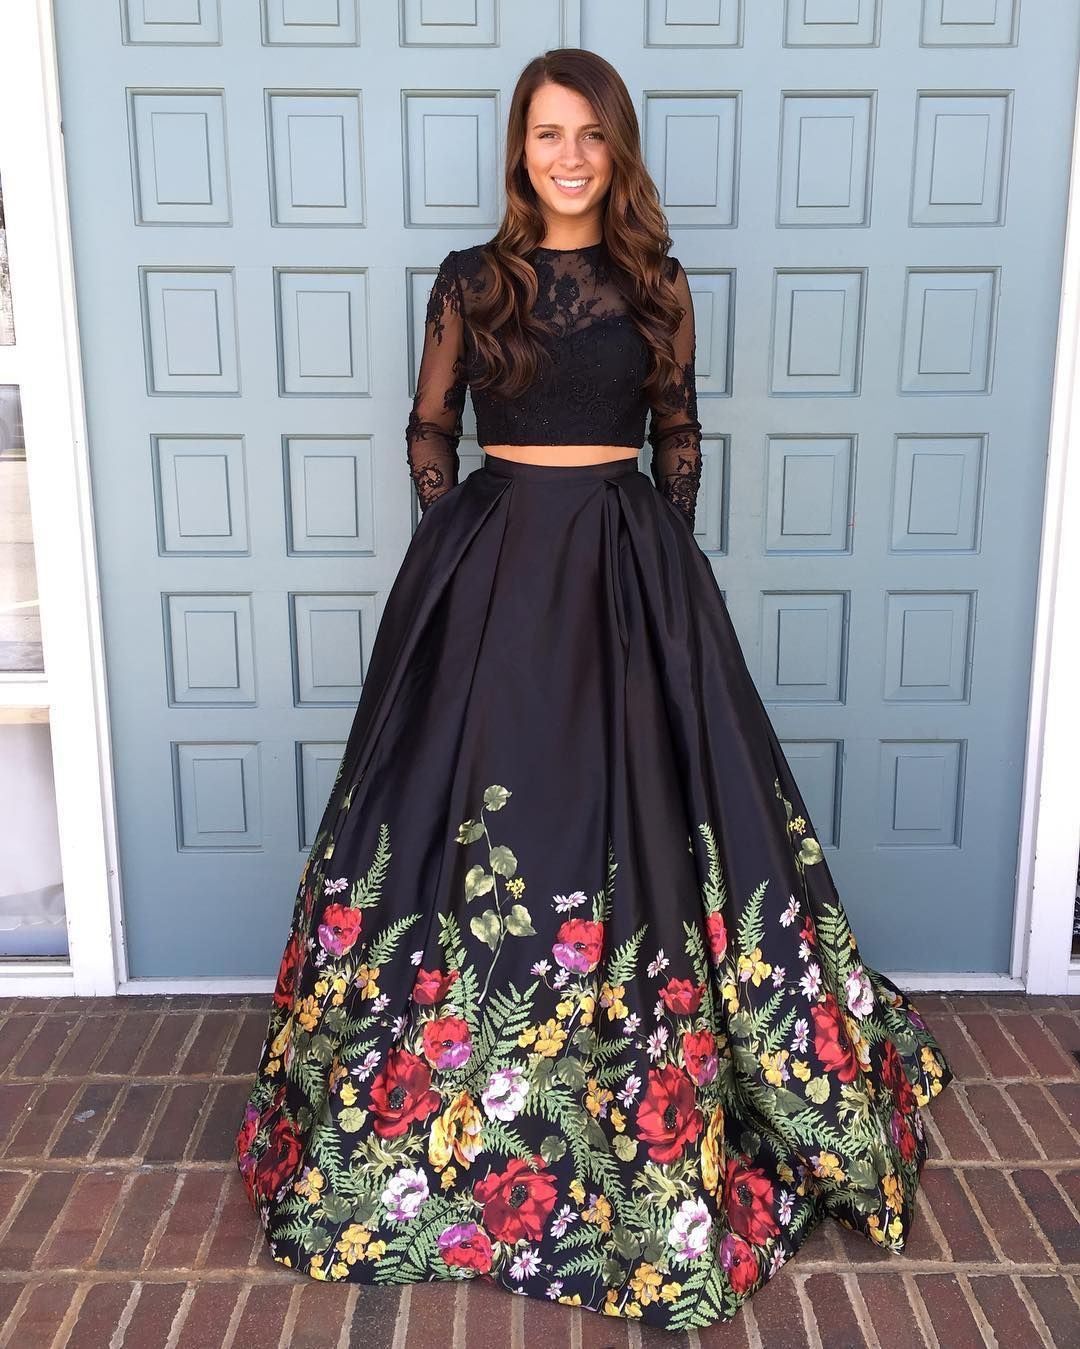 Two Piece Prom Dress,Black Floral Long Prom Dress, Long Sleeves Prom Dress.98